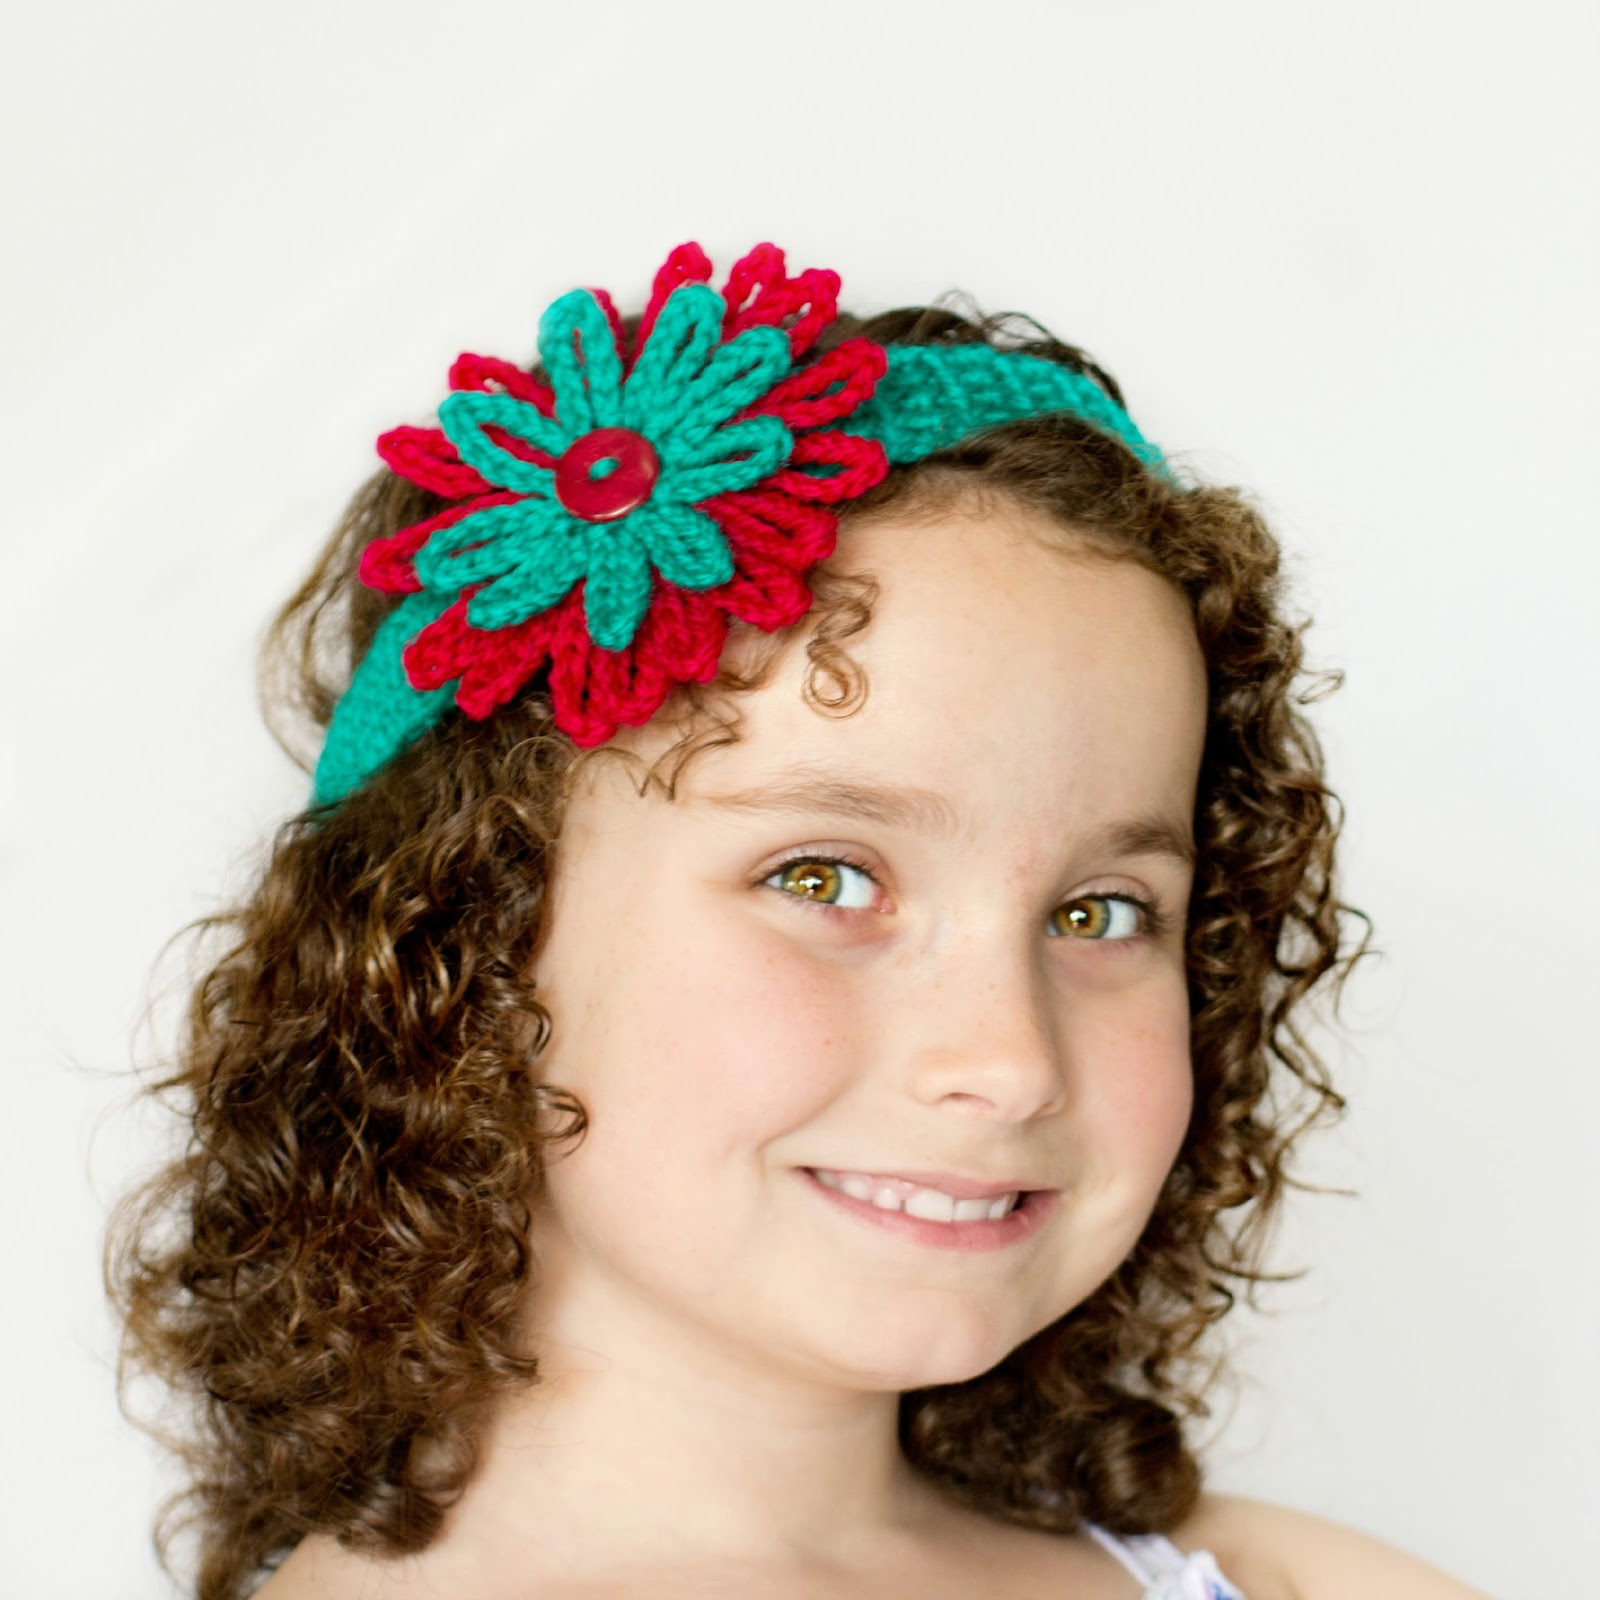 Crochet Pattern For A Flower Headband : Hopeful Honey Craft, Crochet, Create: Season Of Giving ...